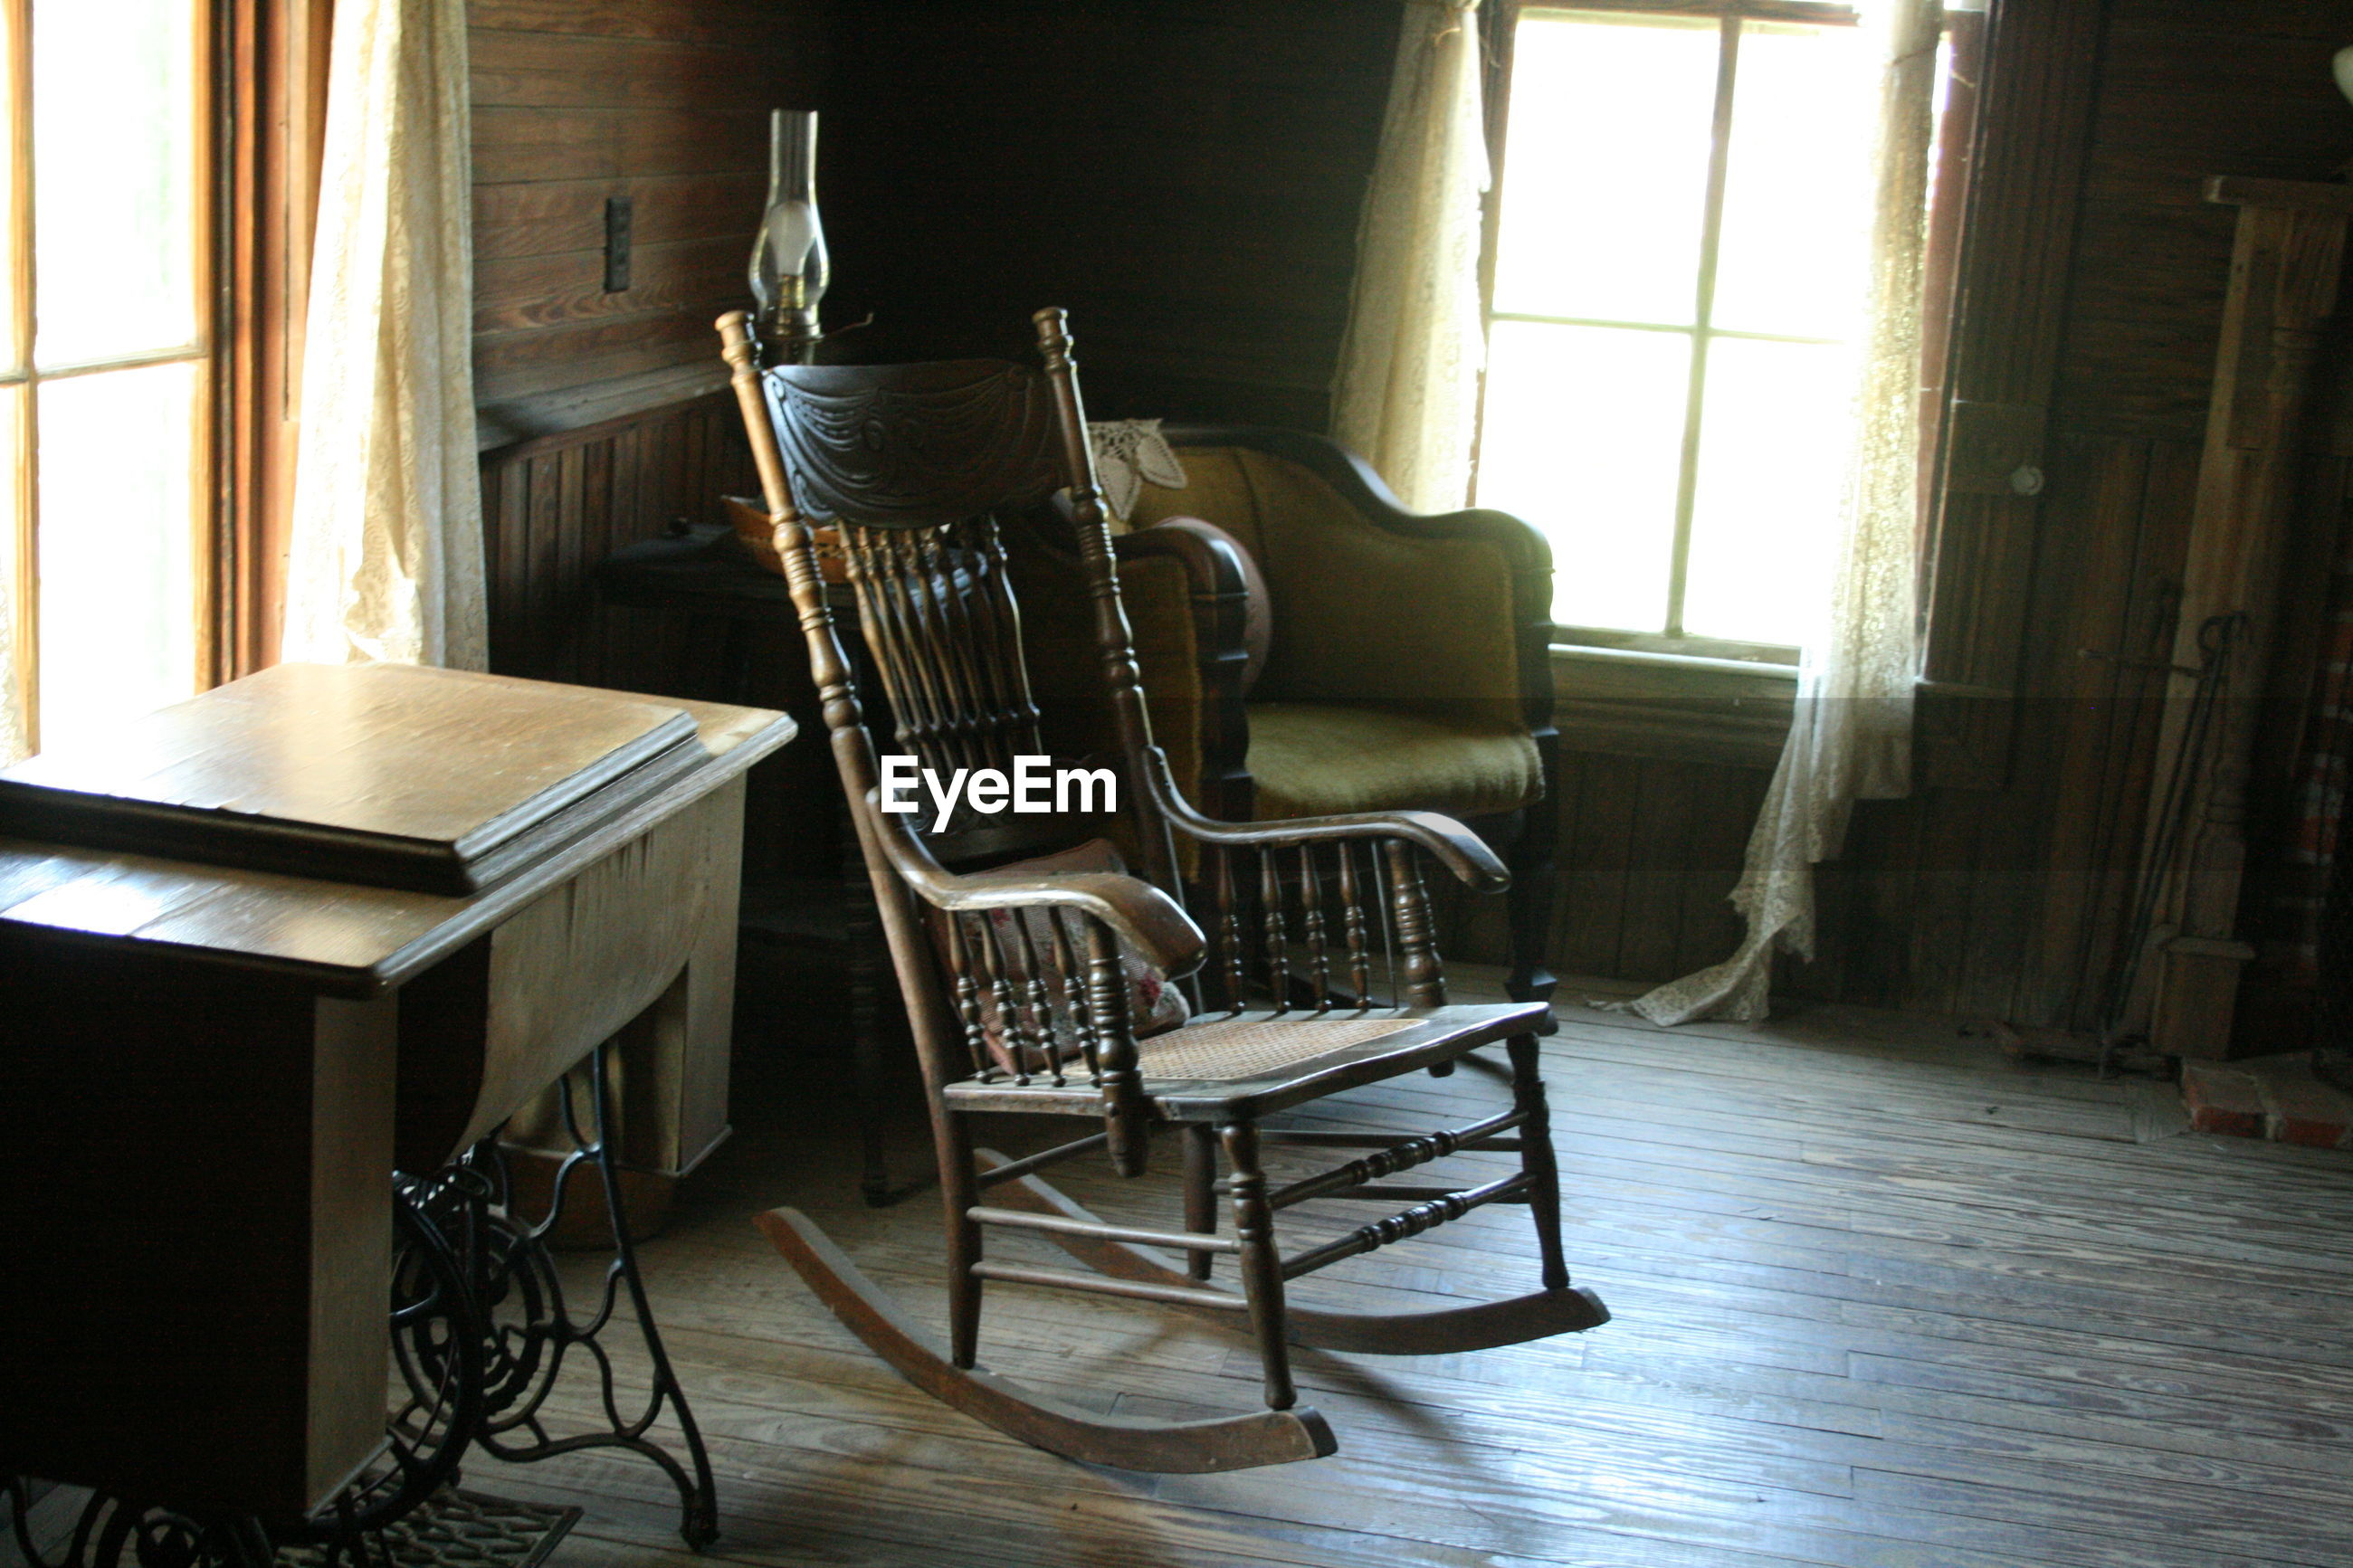 Furniture in old house